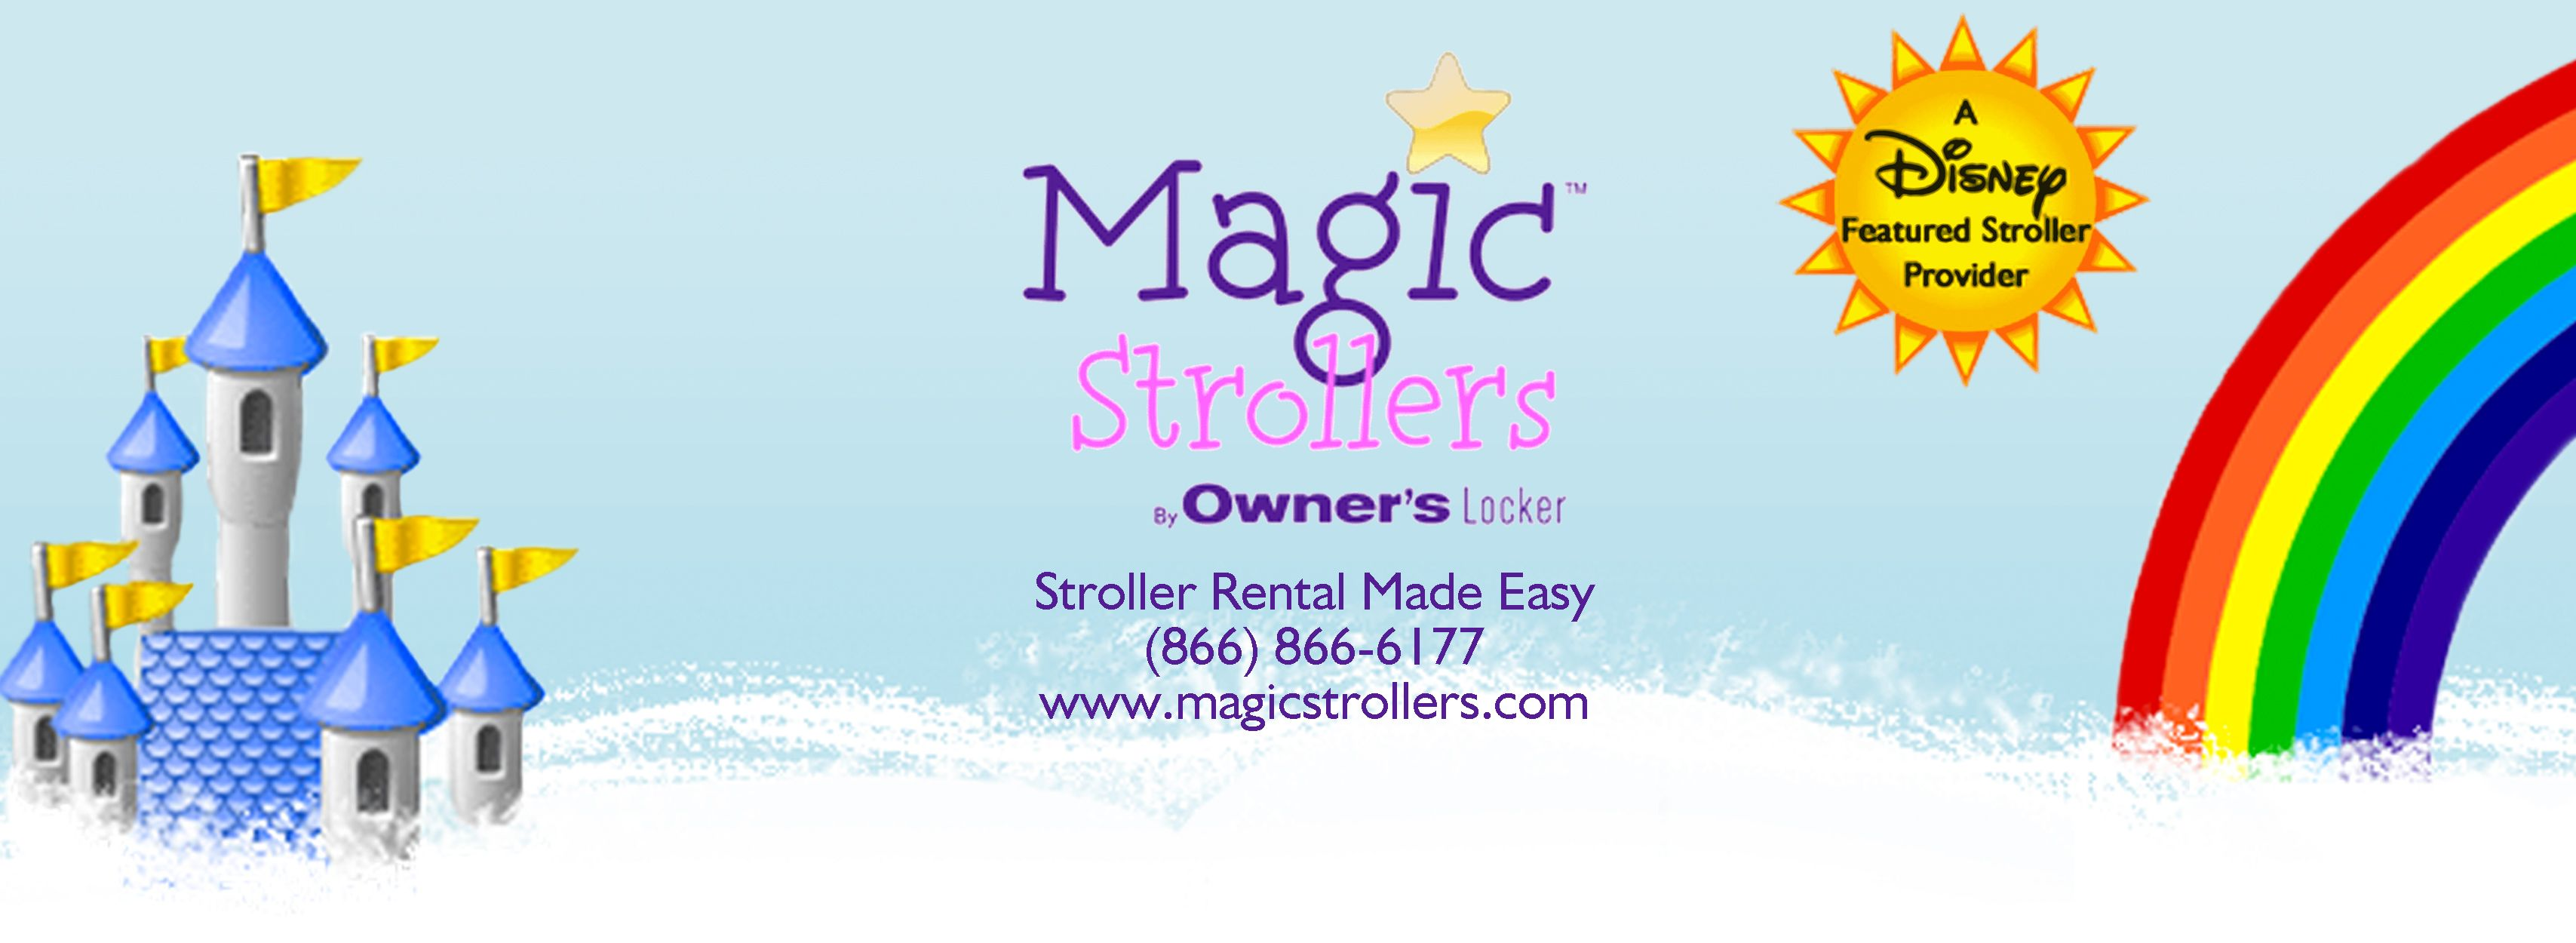 Magic Strollers™ - Orlando Stroller Rental By Owner's Locker